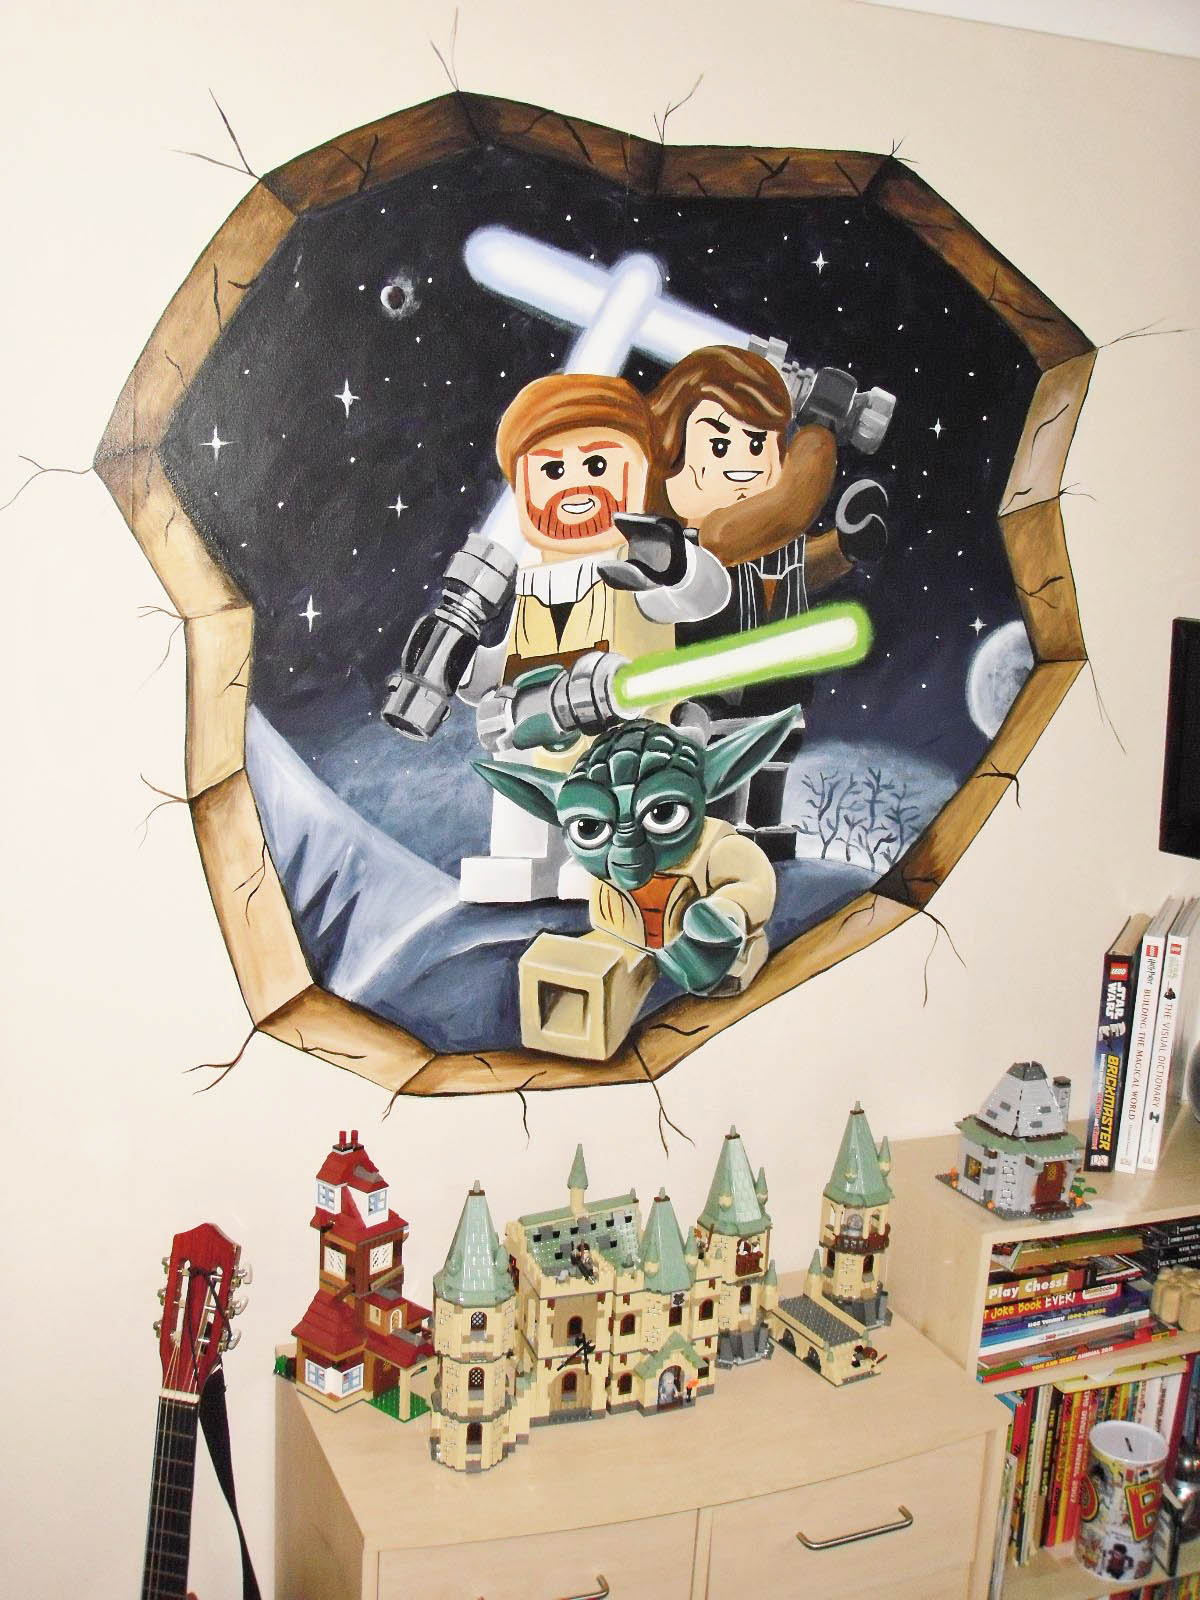 It doesn't have to cost a lot of money to bring out the Star Wars and you, just put up a vinyl Lego Star Wars Breakaway Wall sticker and you're good to go!